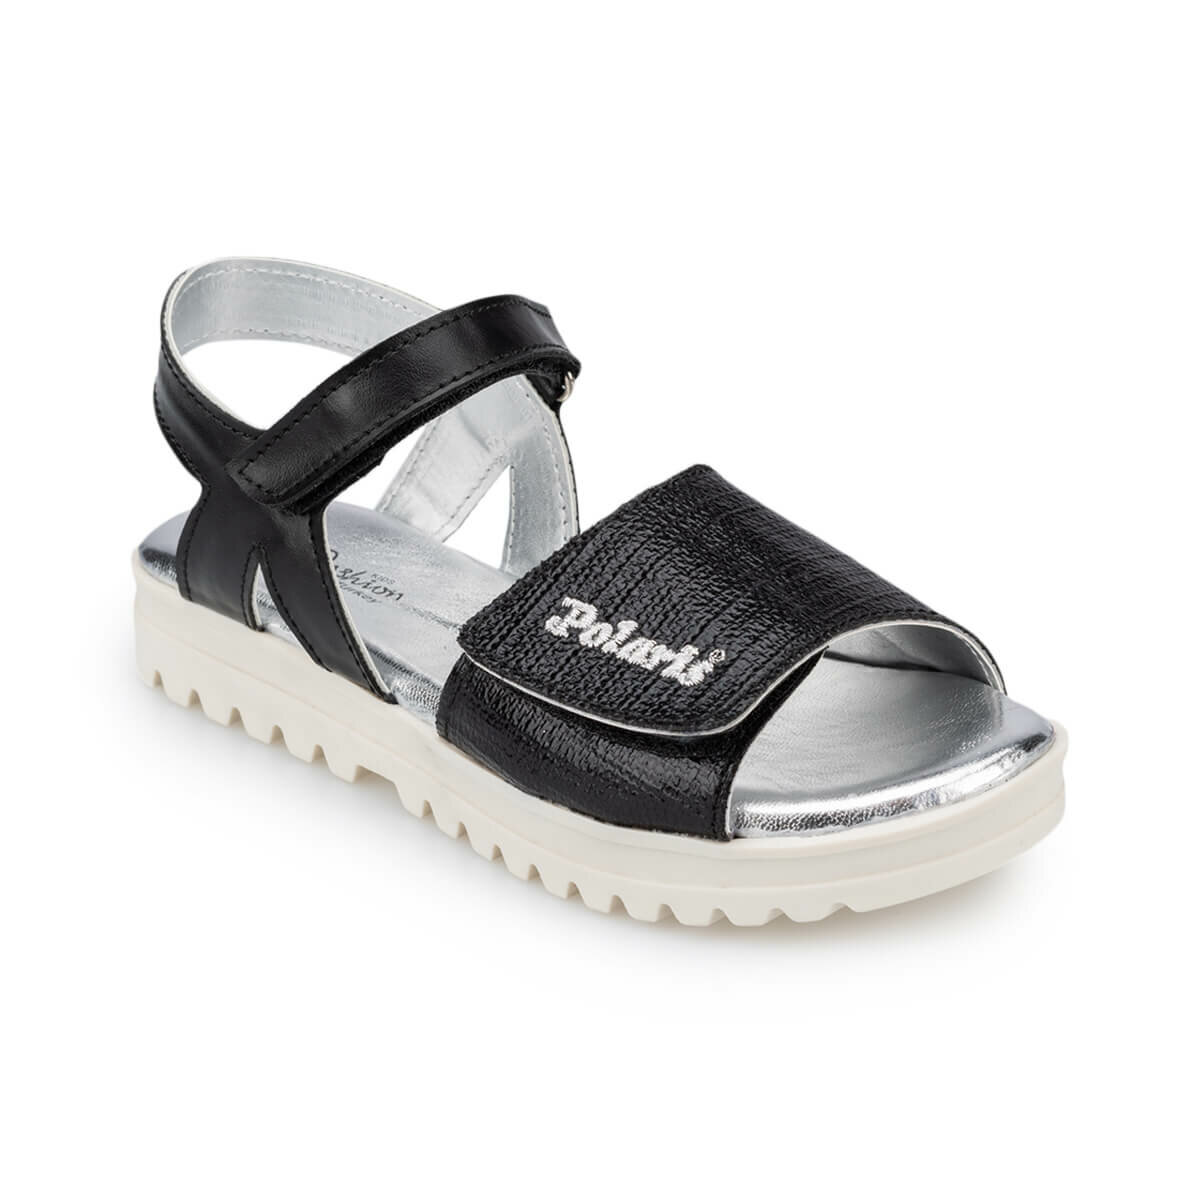 FLO 91.511380.F Black Female Child Sandals Polaris